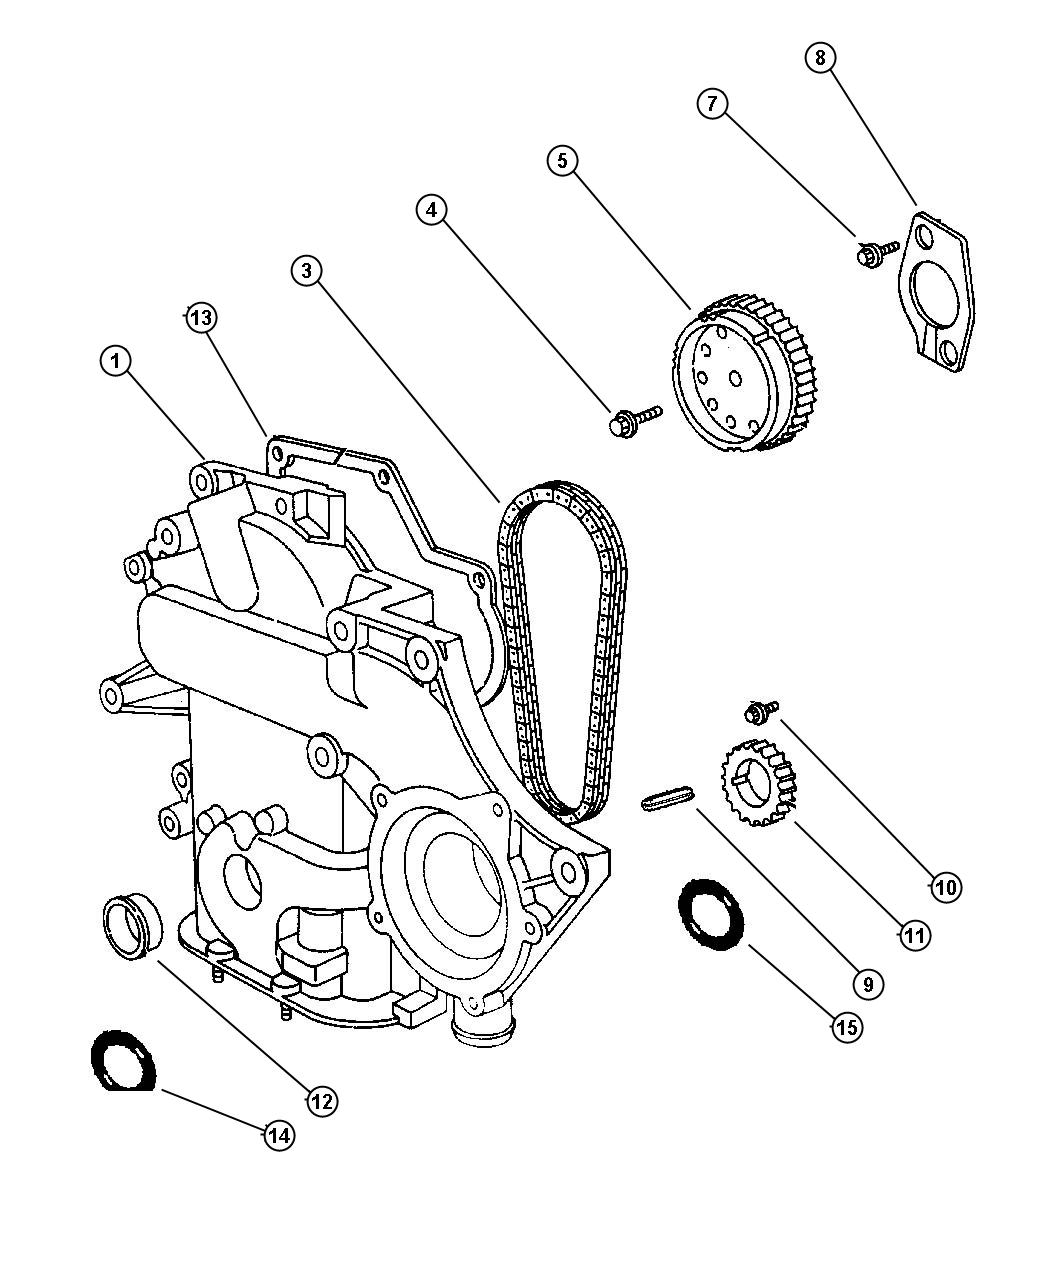 Service manual [1998 Plymouth Grand Voyager Timing Cover